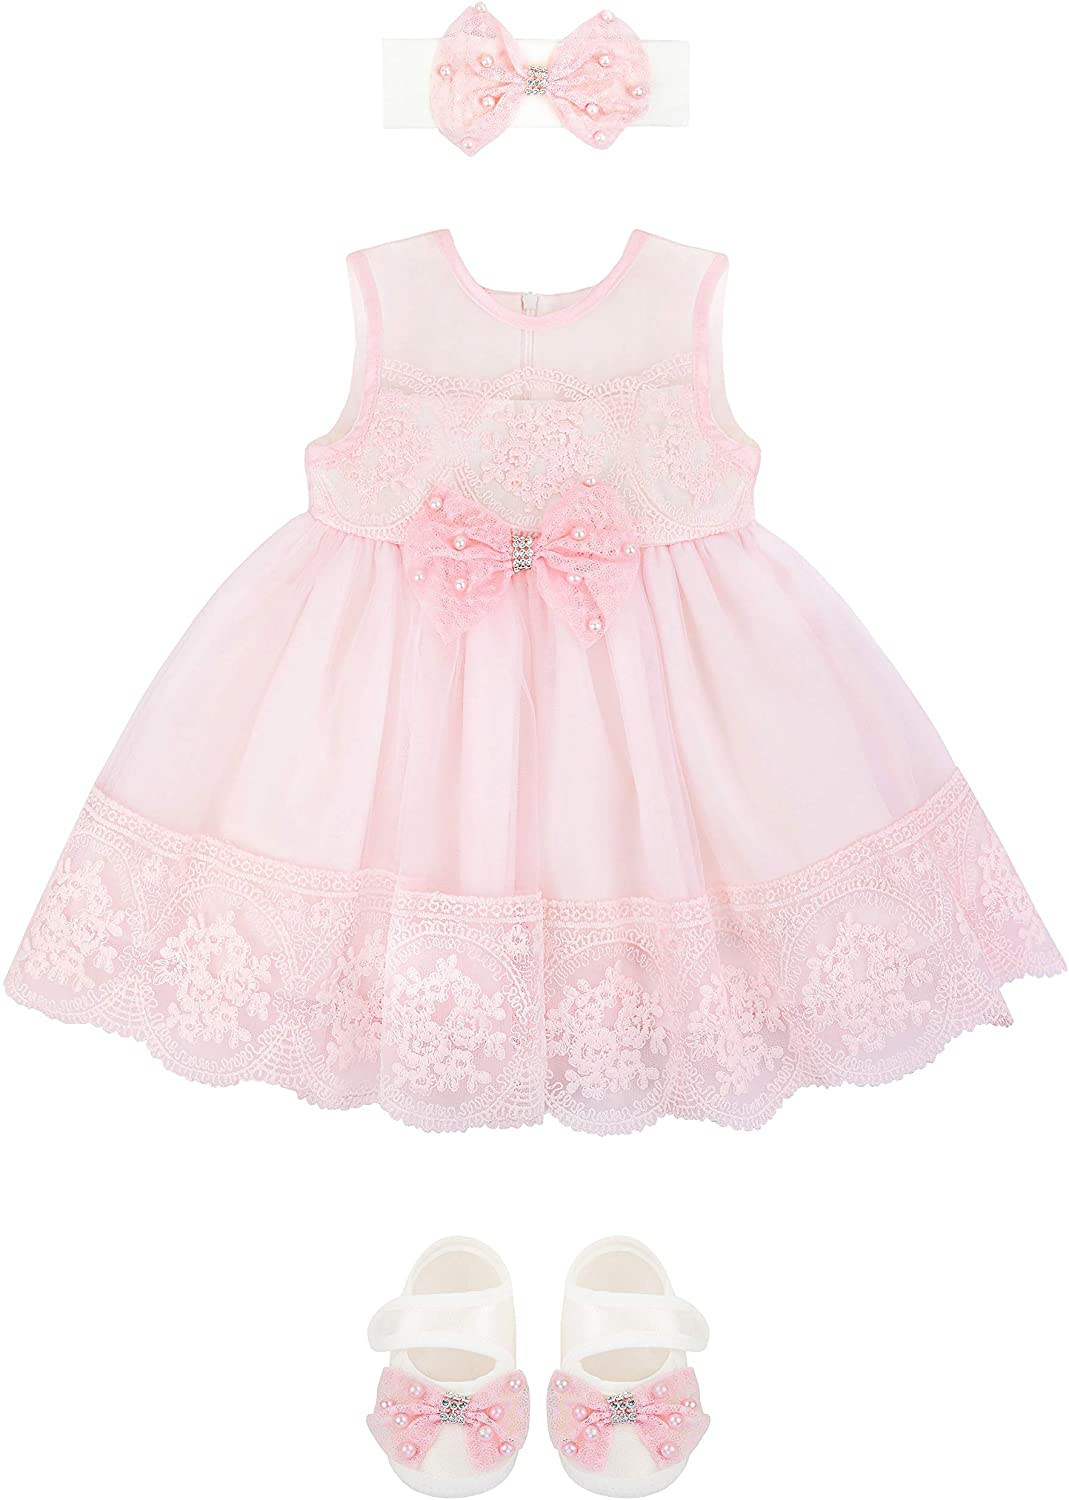 TF Taffy Baby Girl Newborn Pink Embroidered Princess Dress Gown 8 Piece  Deluxe Set 8-8 Months